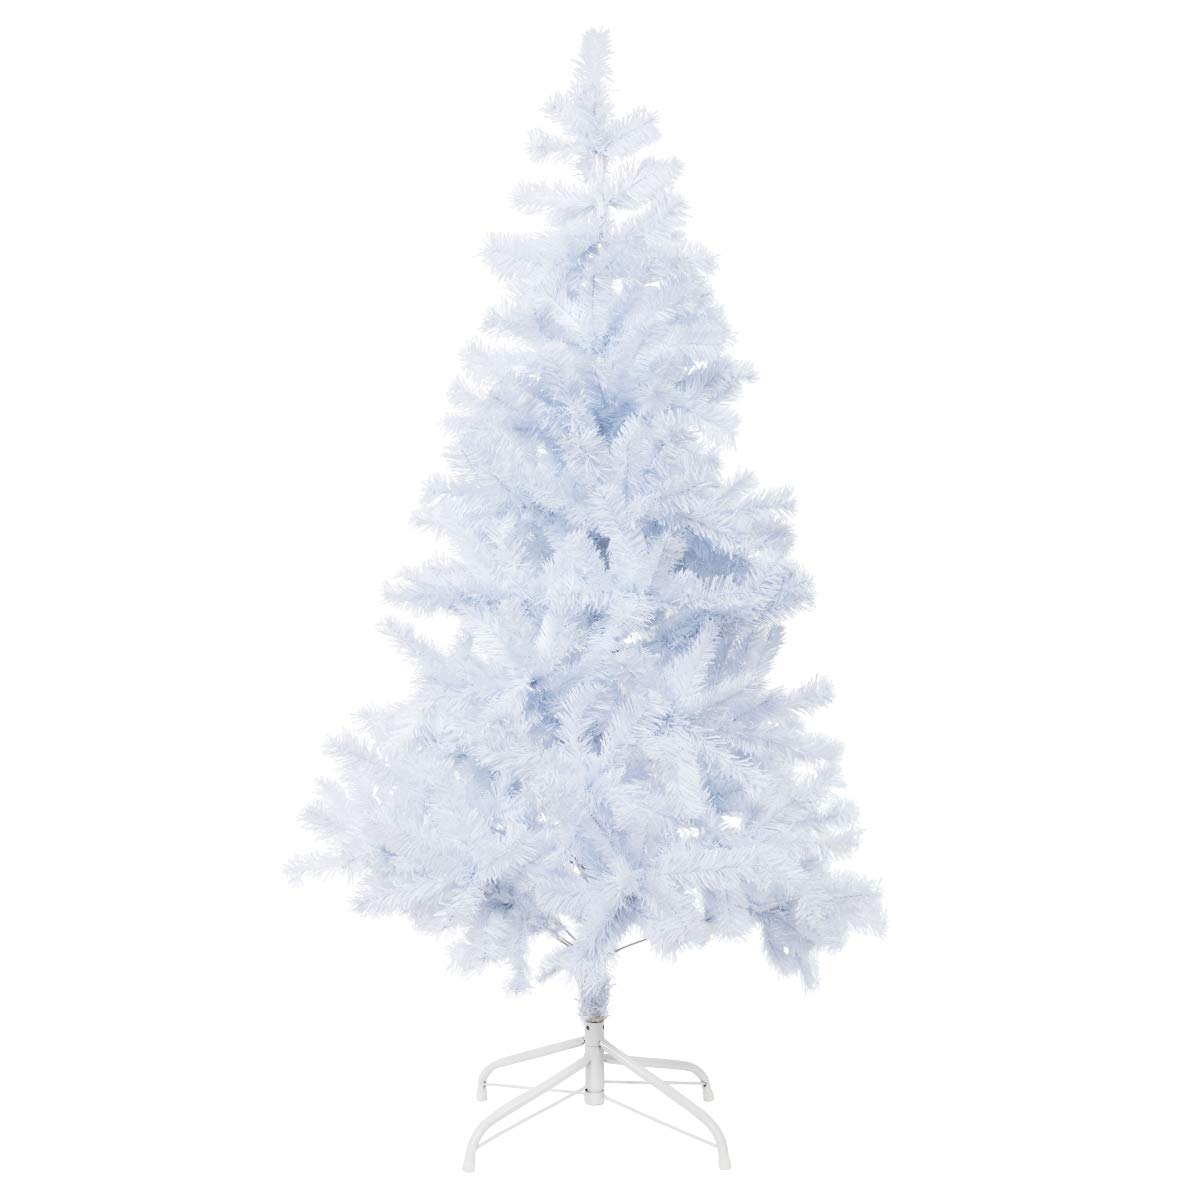 Bocca 5 FT Christmas Tree Atificial Premium Pine Full Tree with Metal Leg Indoor and Outdoor (White, 5FT)